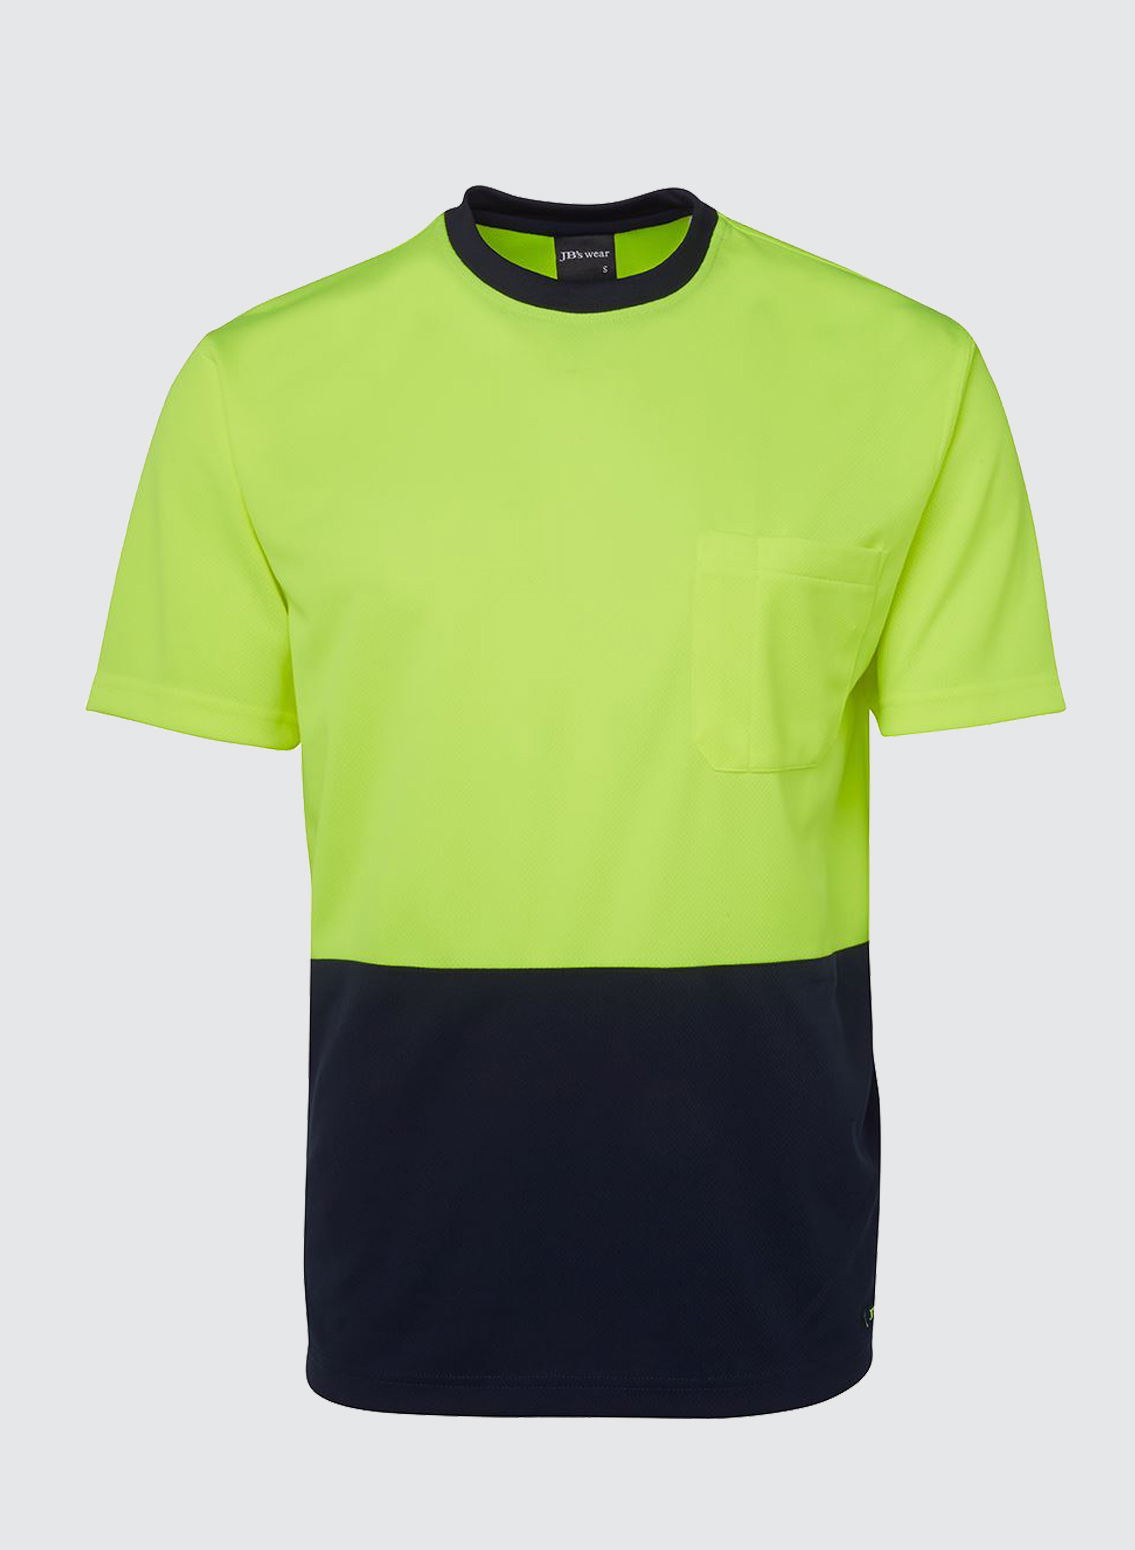 6hvt hi vis traditonal t shirt business image group for Hi vis t shirt printing